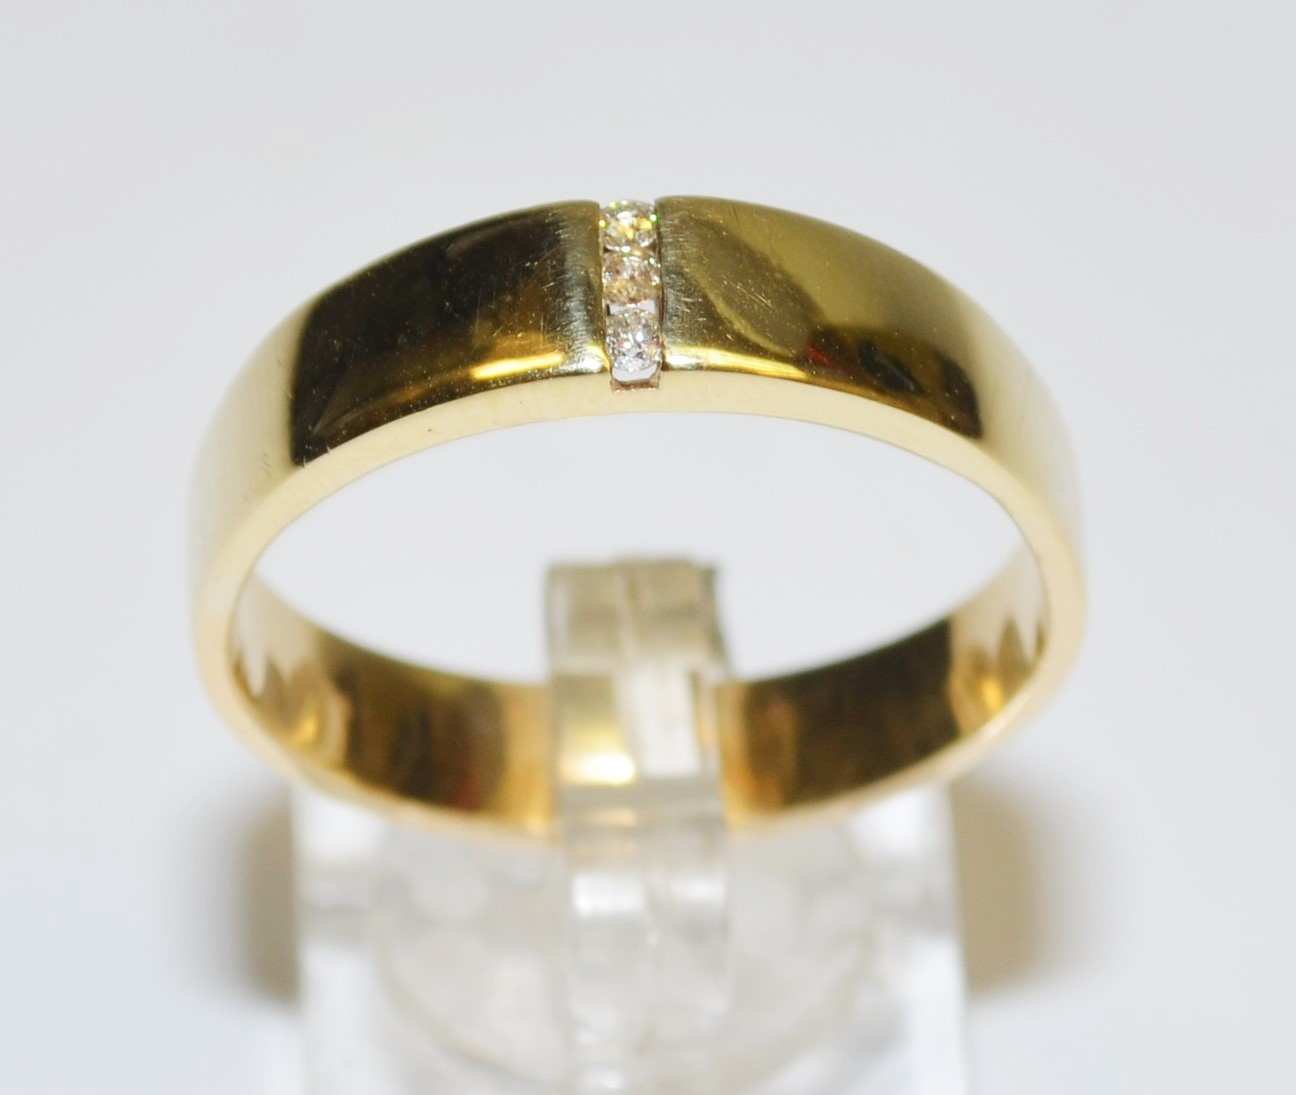 clearance 9k yellow gold wedding engagement mens